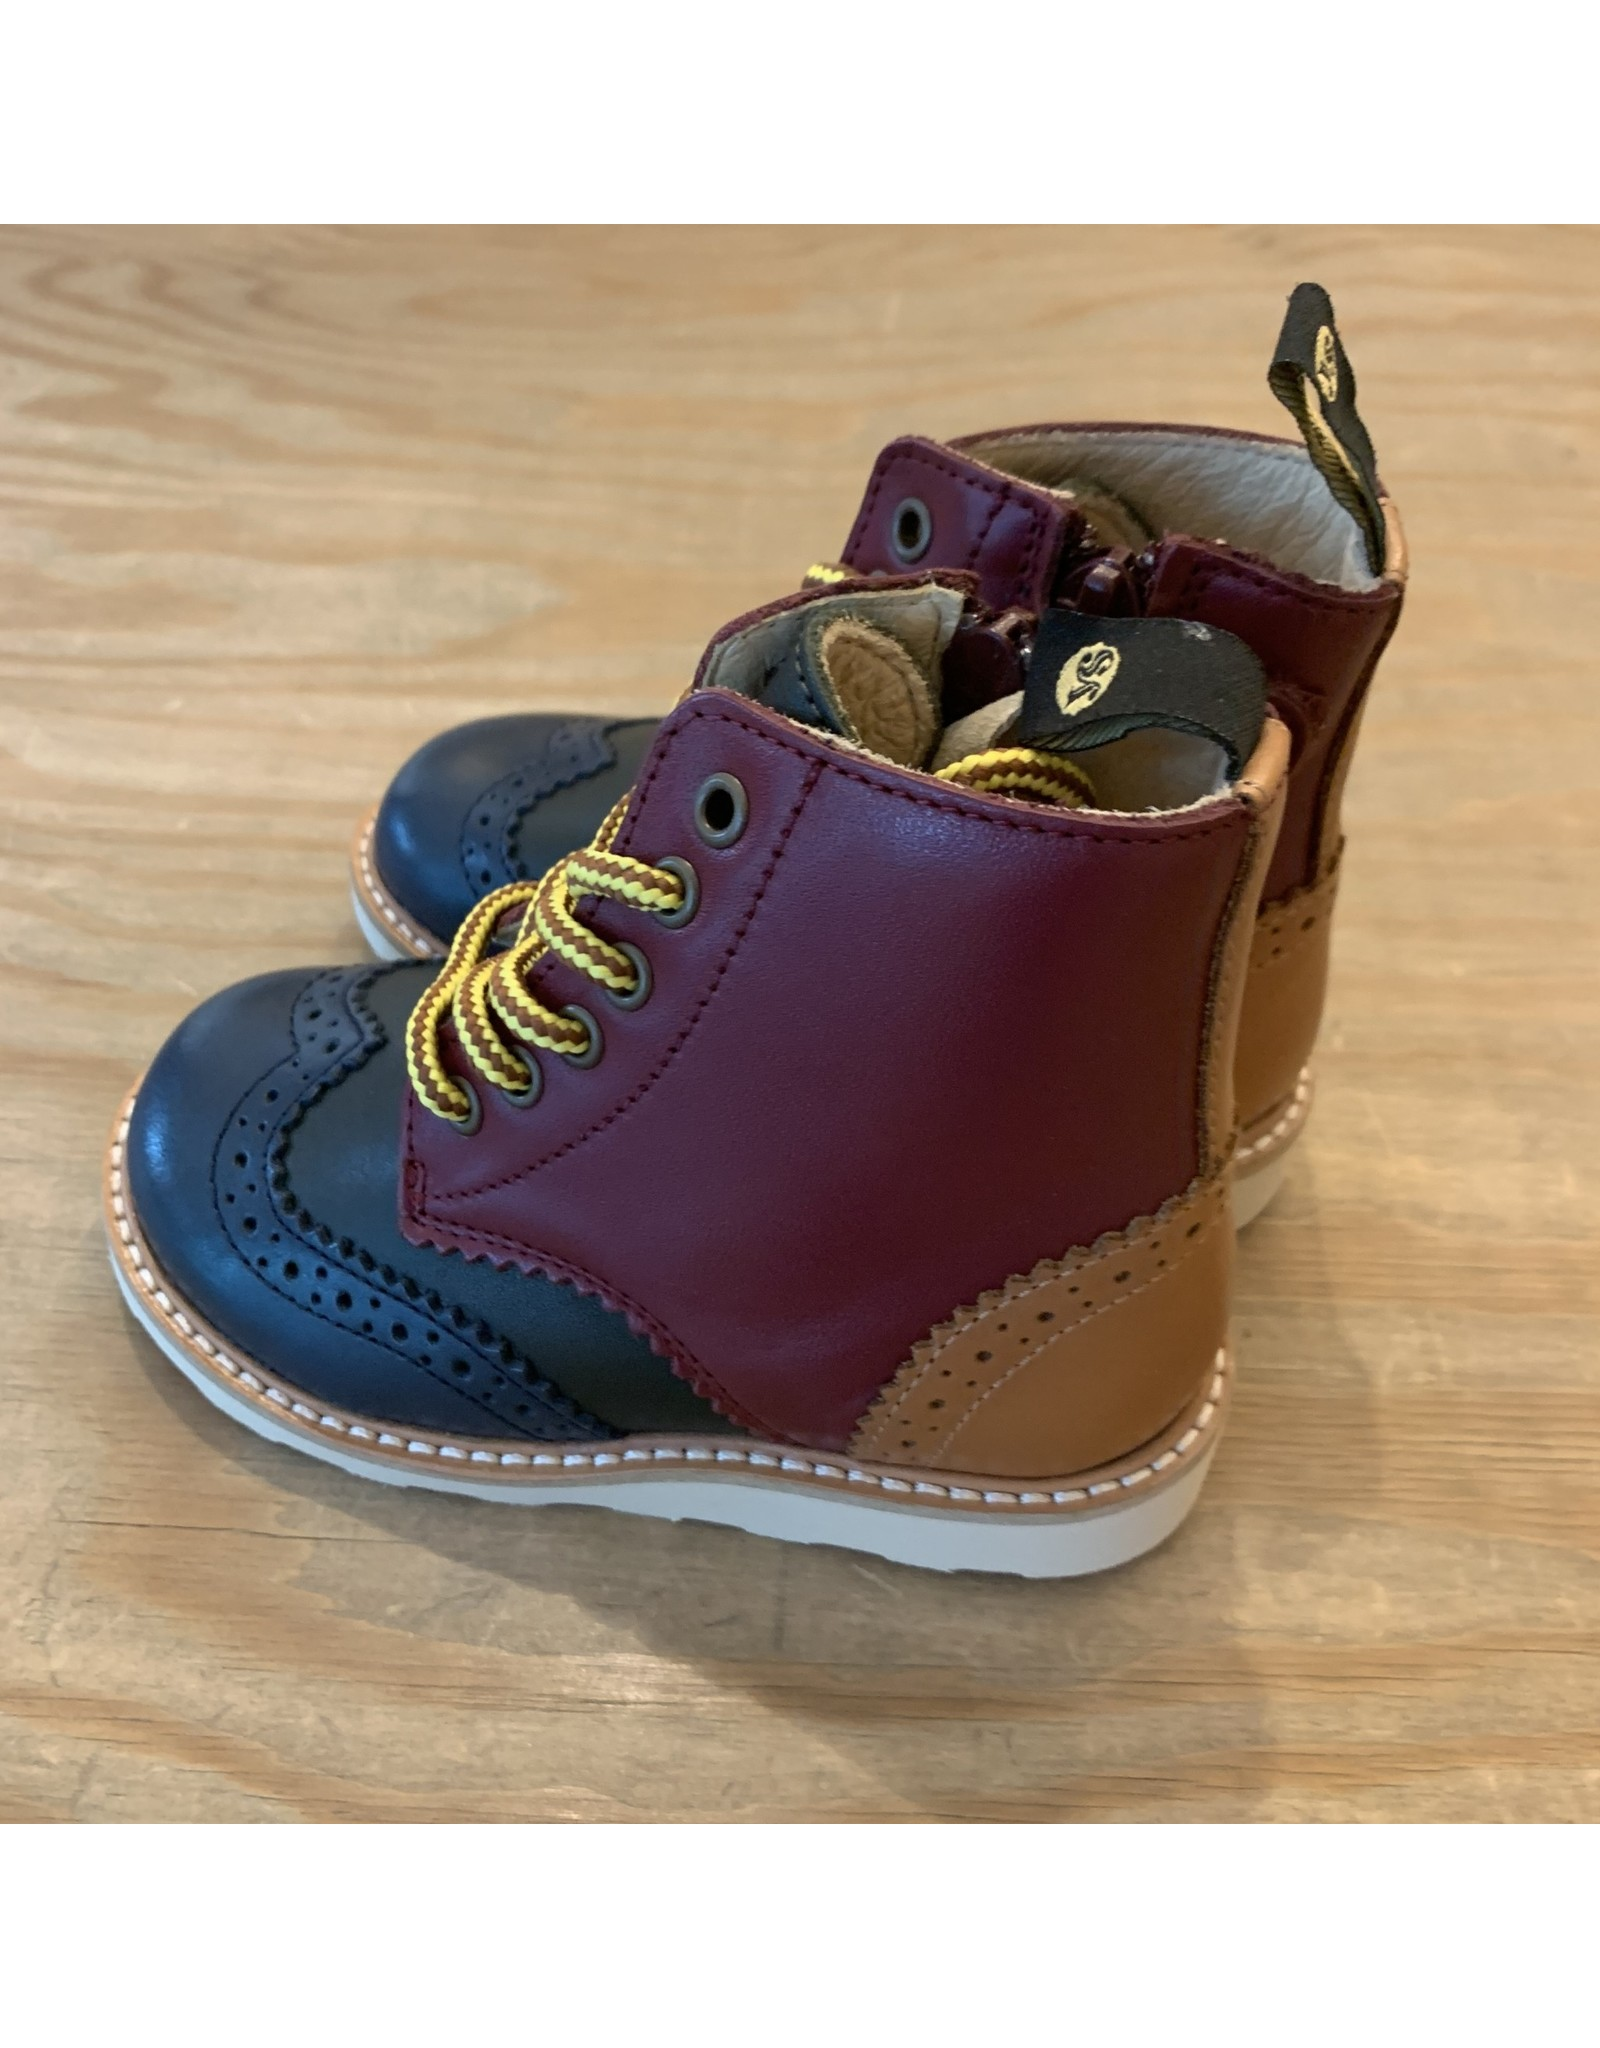 YOUNG SOLES YOUNG SOLES SIDNEY BROGUES MULTIBLOCK AUTUMNAL LEATHER